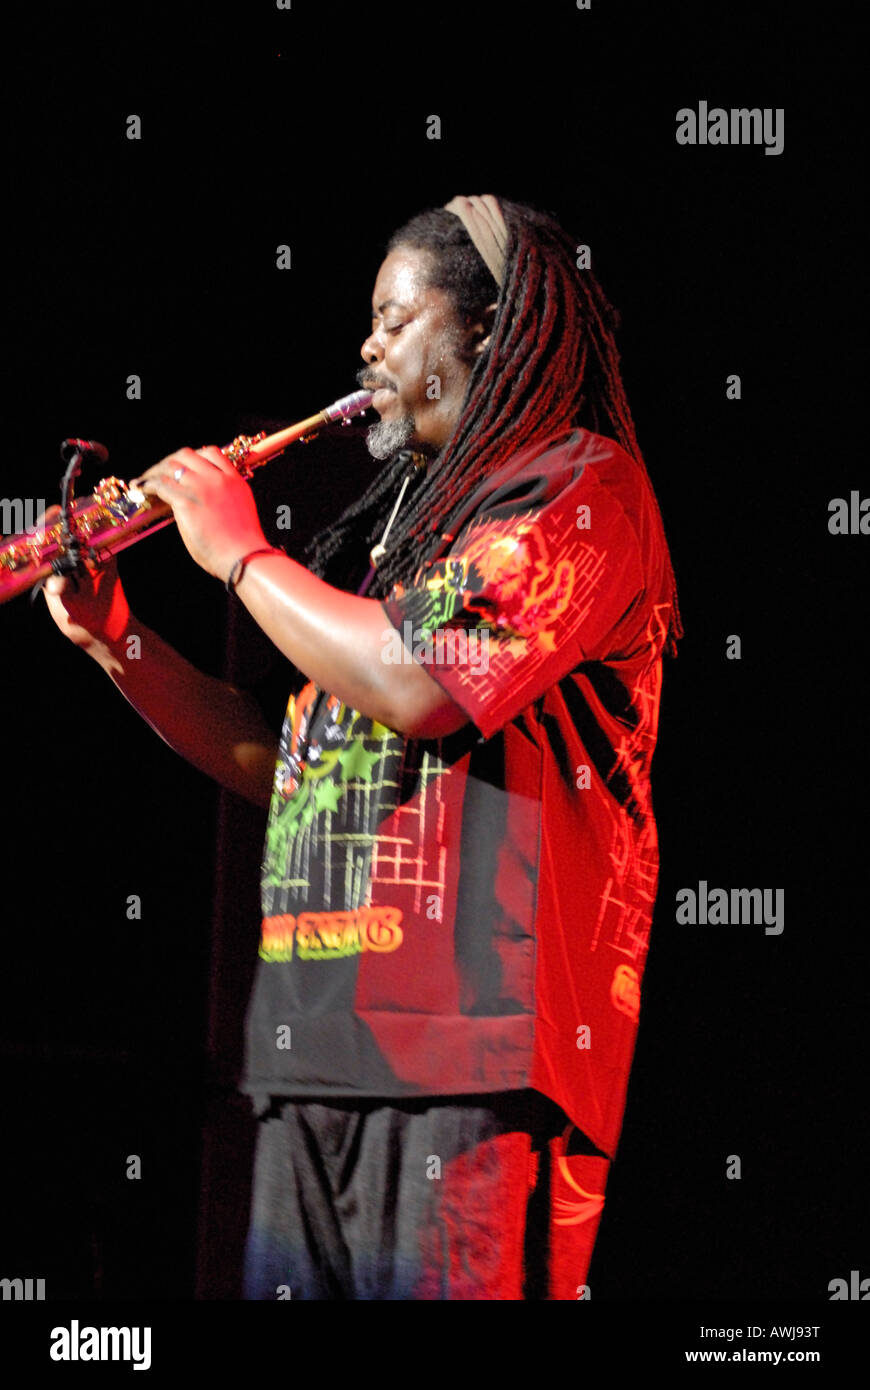 Courtney Pine playing saxophone at The Opera House in